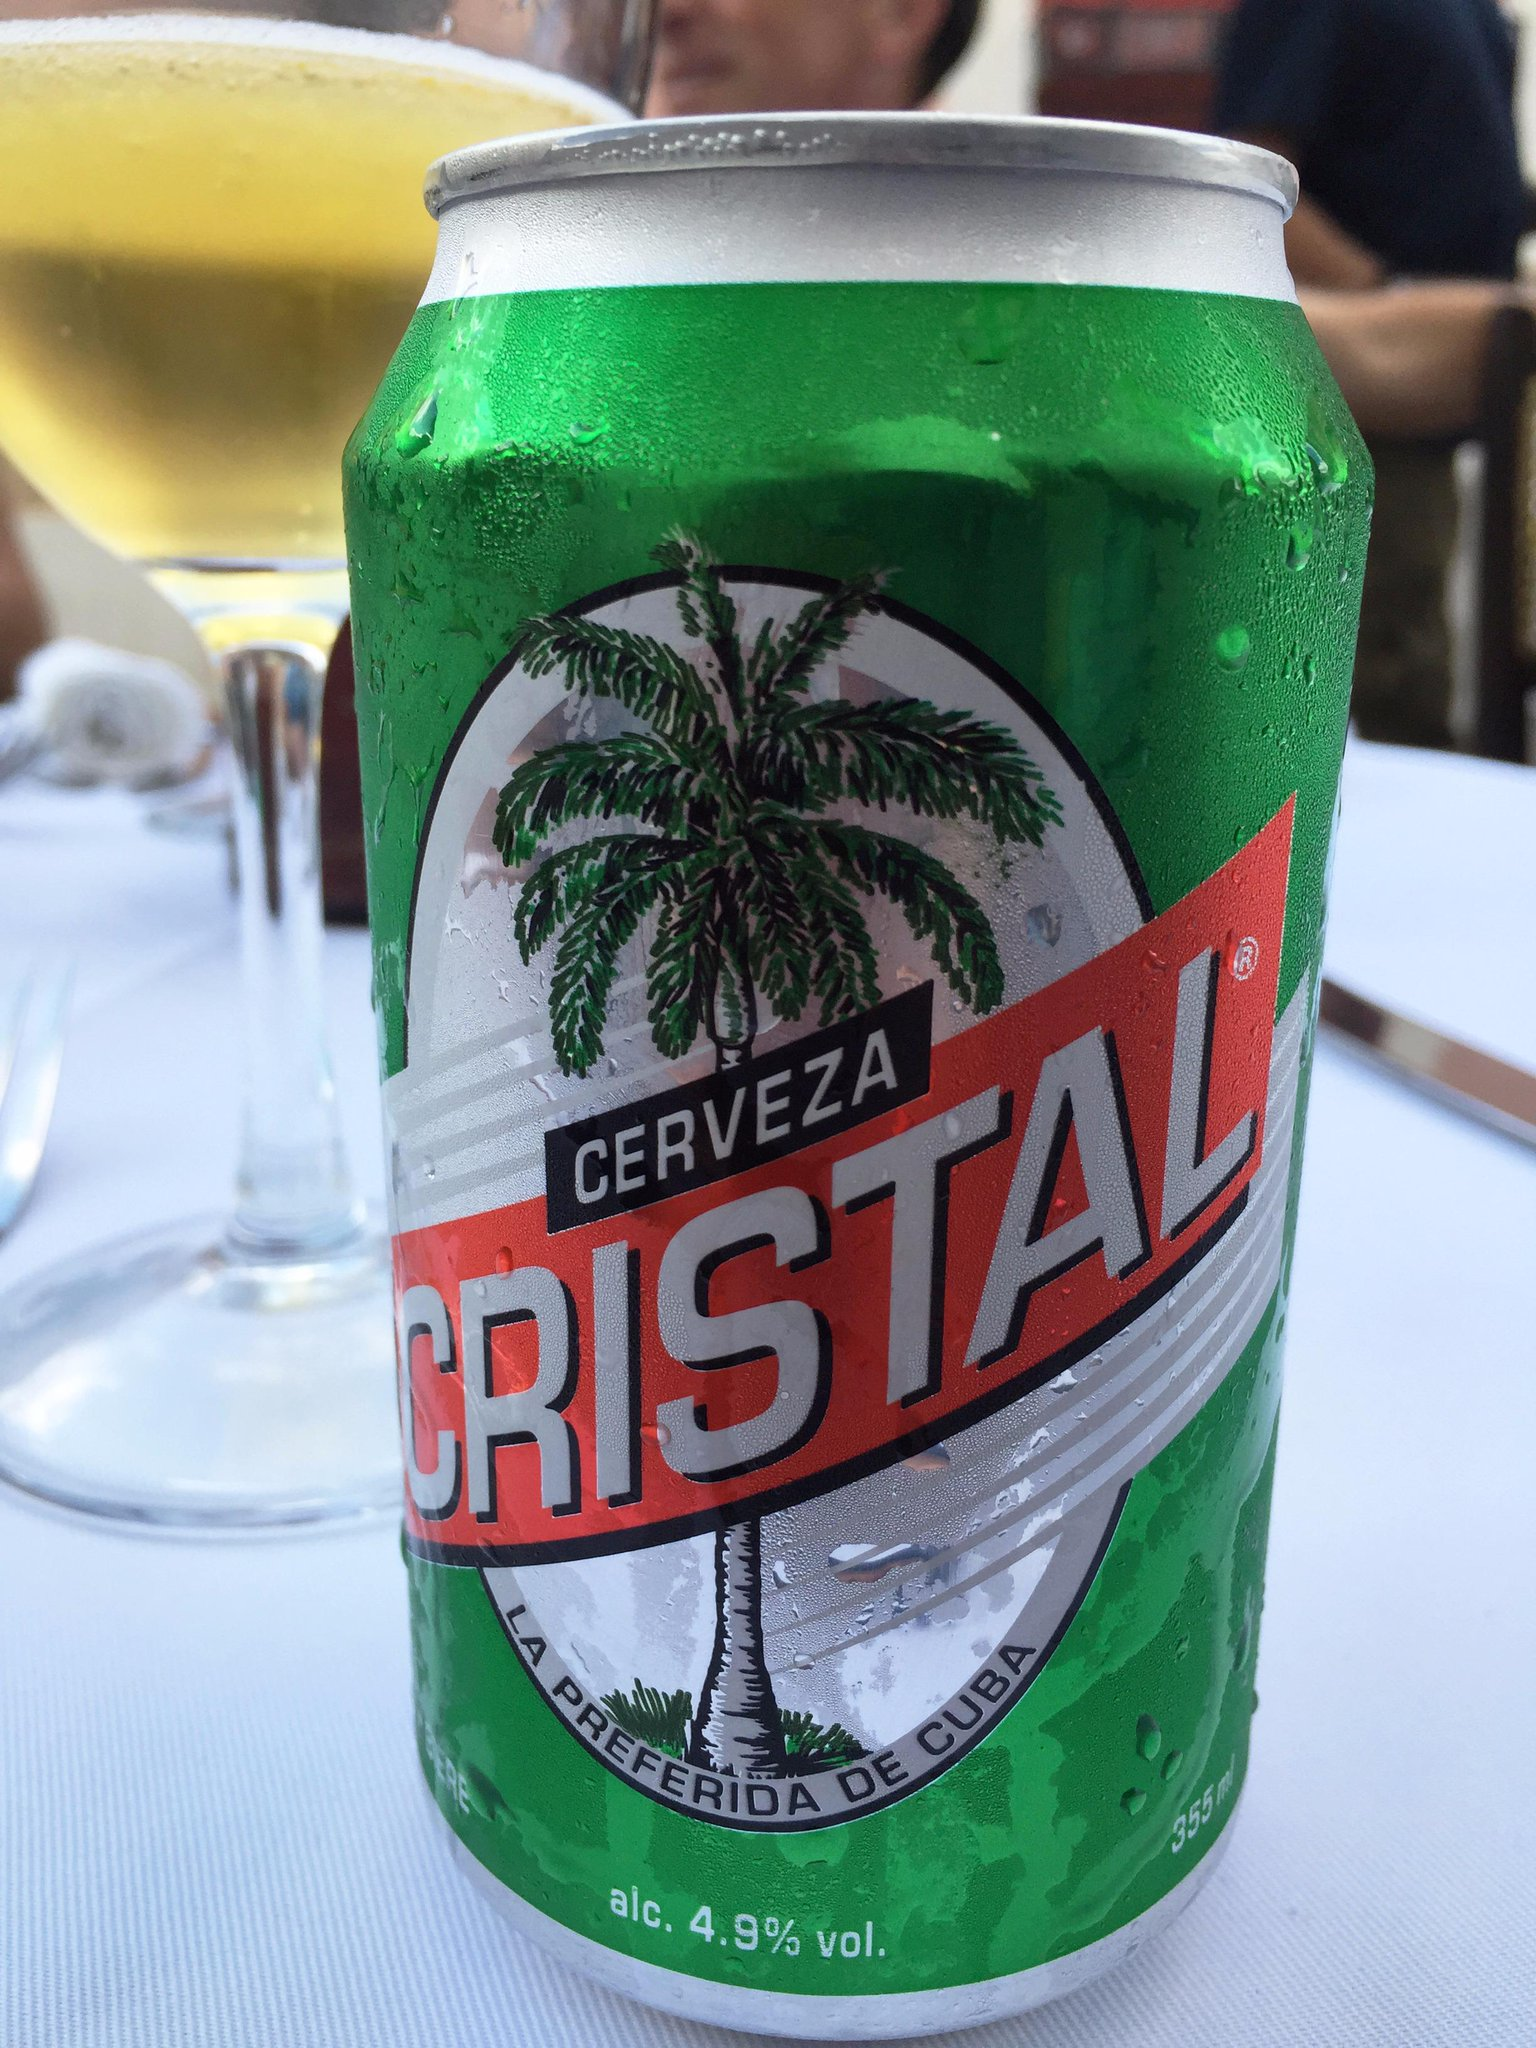 Snapped on my iPhone: the champagne of cervezas. #ConanCUBA http://t.co/eZjeZt1FlN